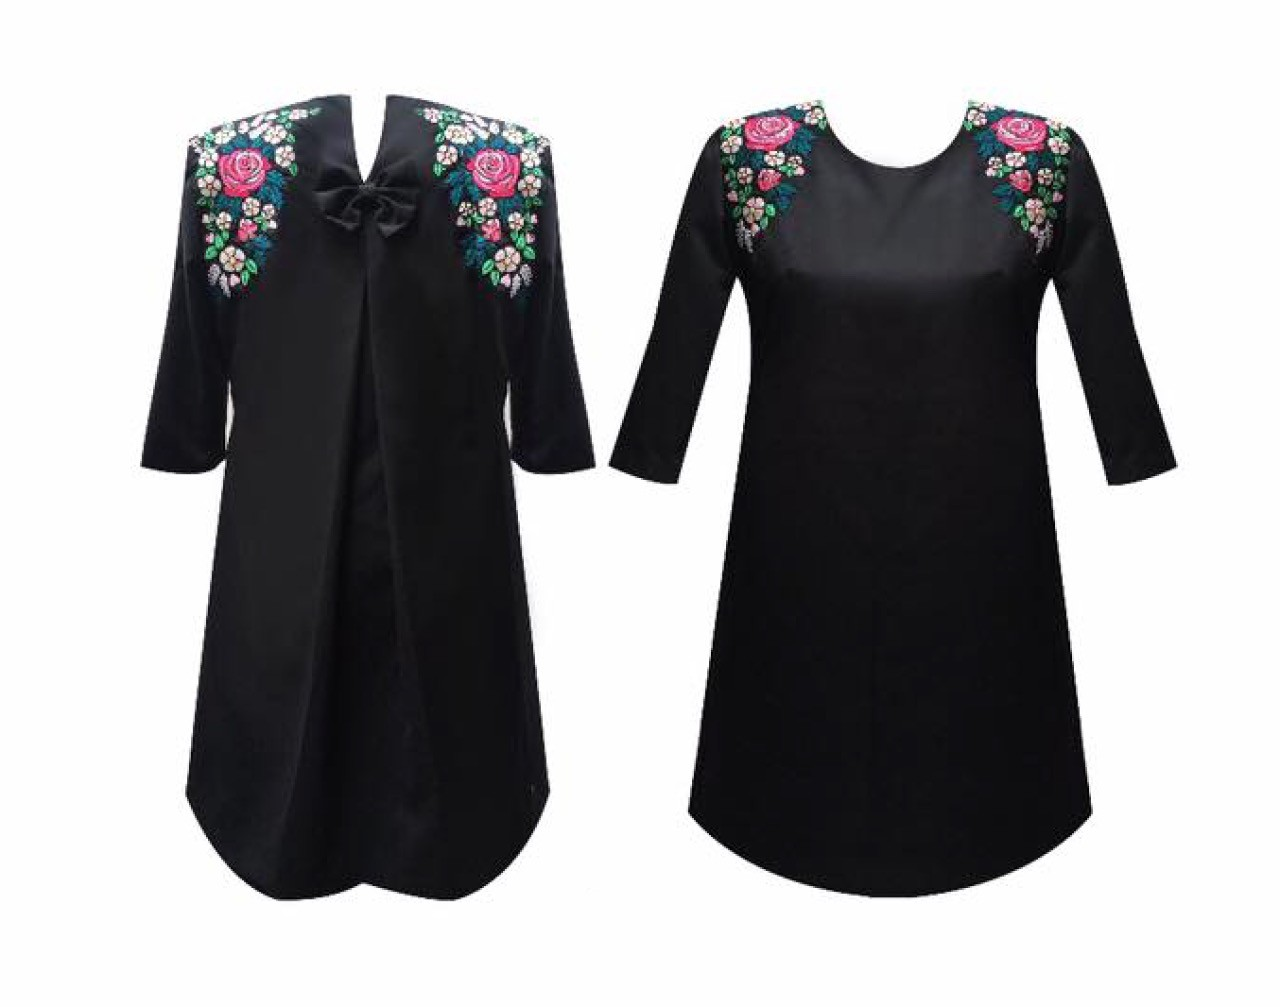 Florencia embroidered dress, Size L